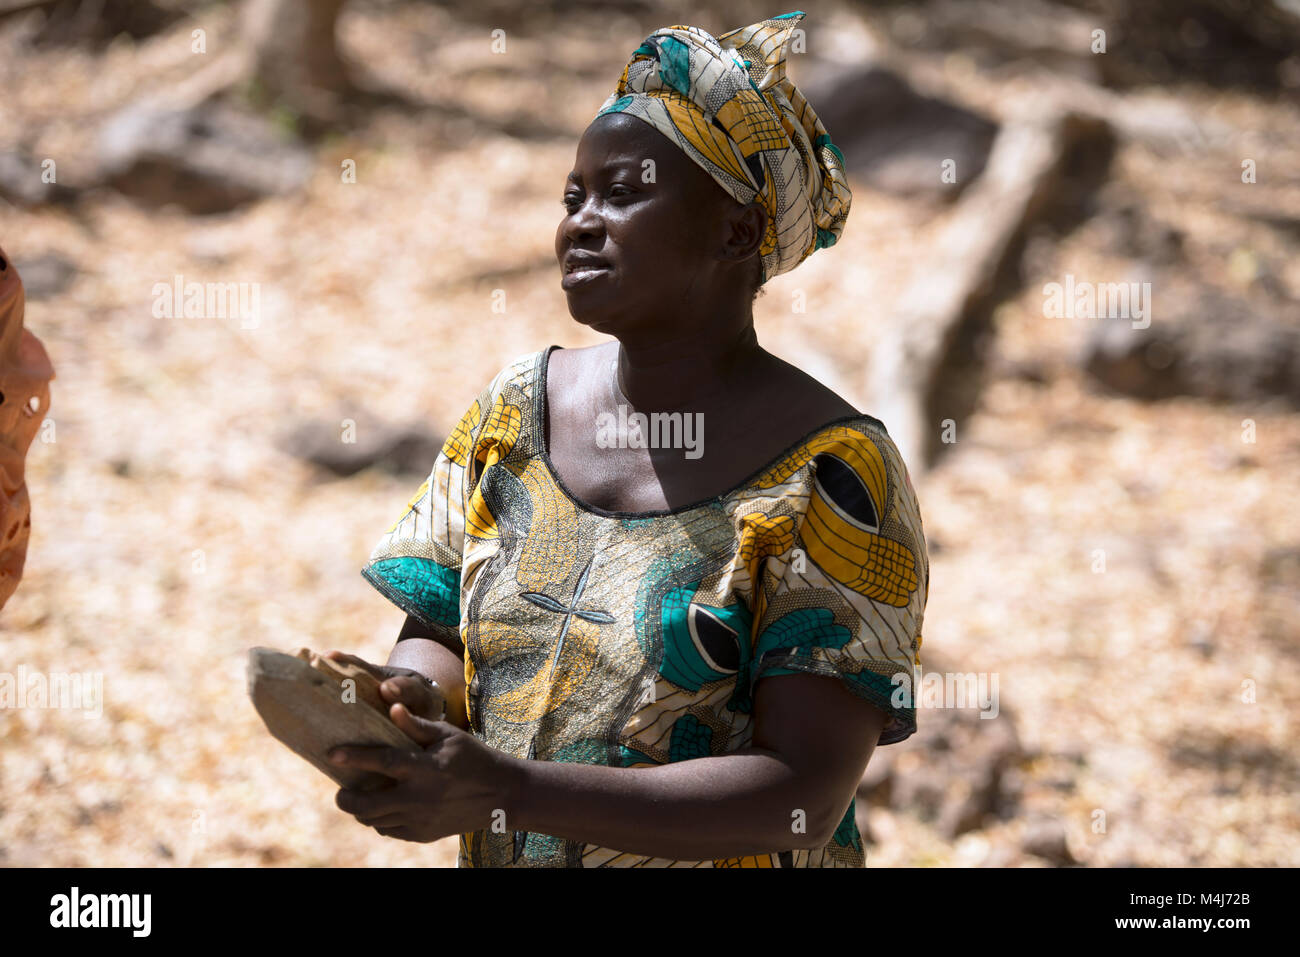 An ethnic Mandingo woman plays a traditional instrument during a ceremonial village dance in The Gambia, West Africa. - Stock Image